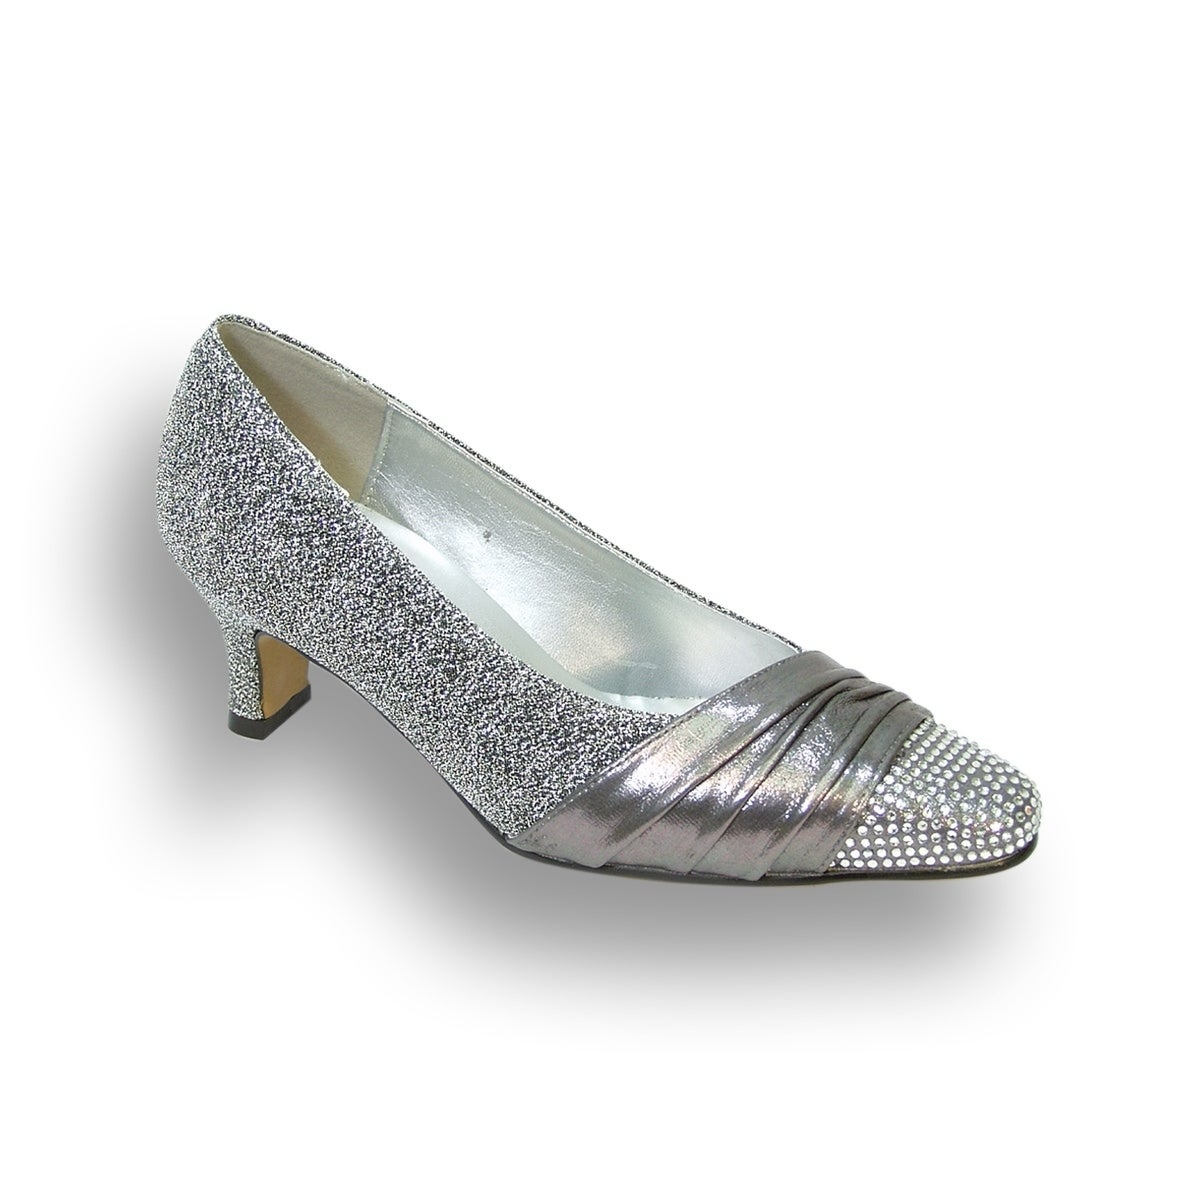 FLORAL Dolly Women Extra Wide Width Rhinestone Toe Cap Glittery Pumps (More  options available)